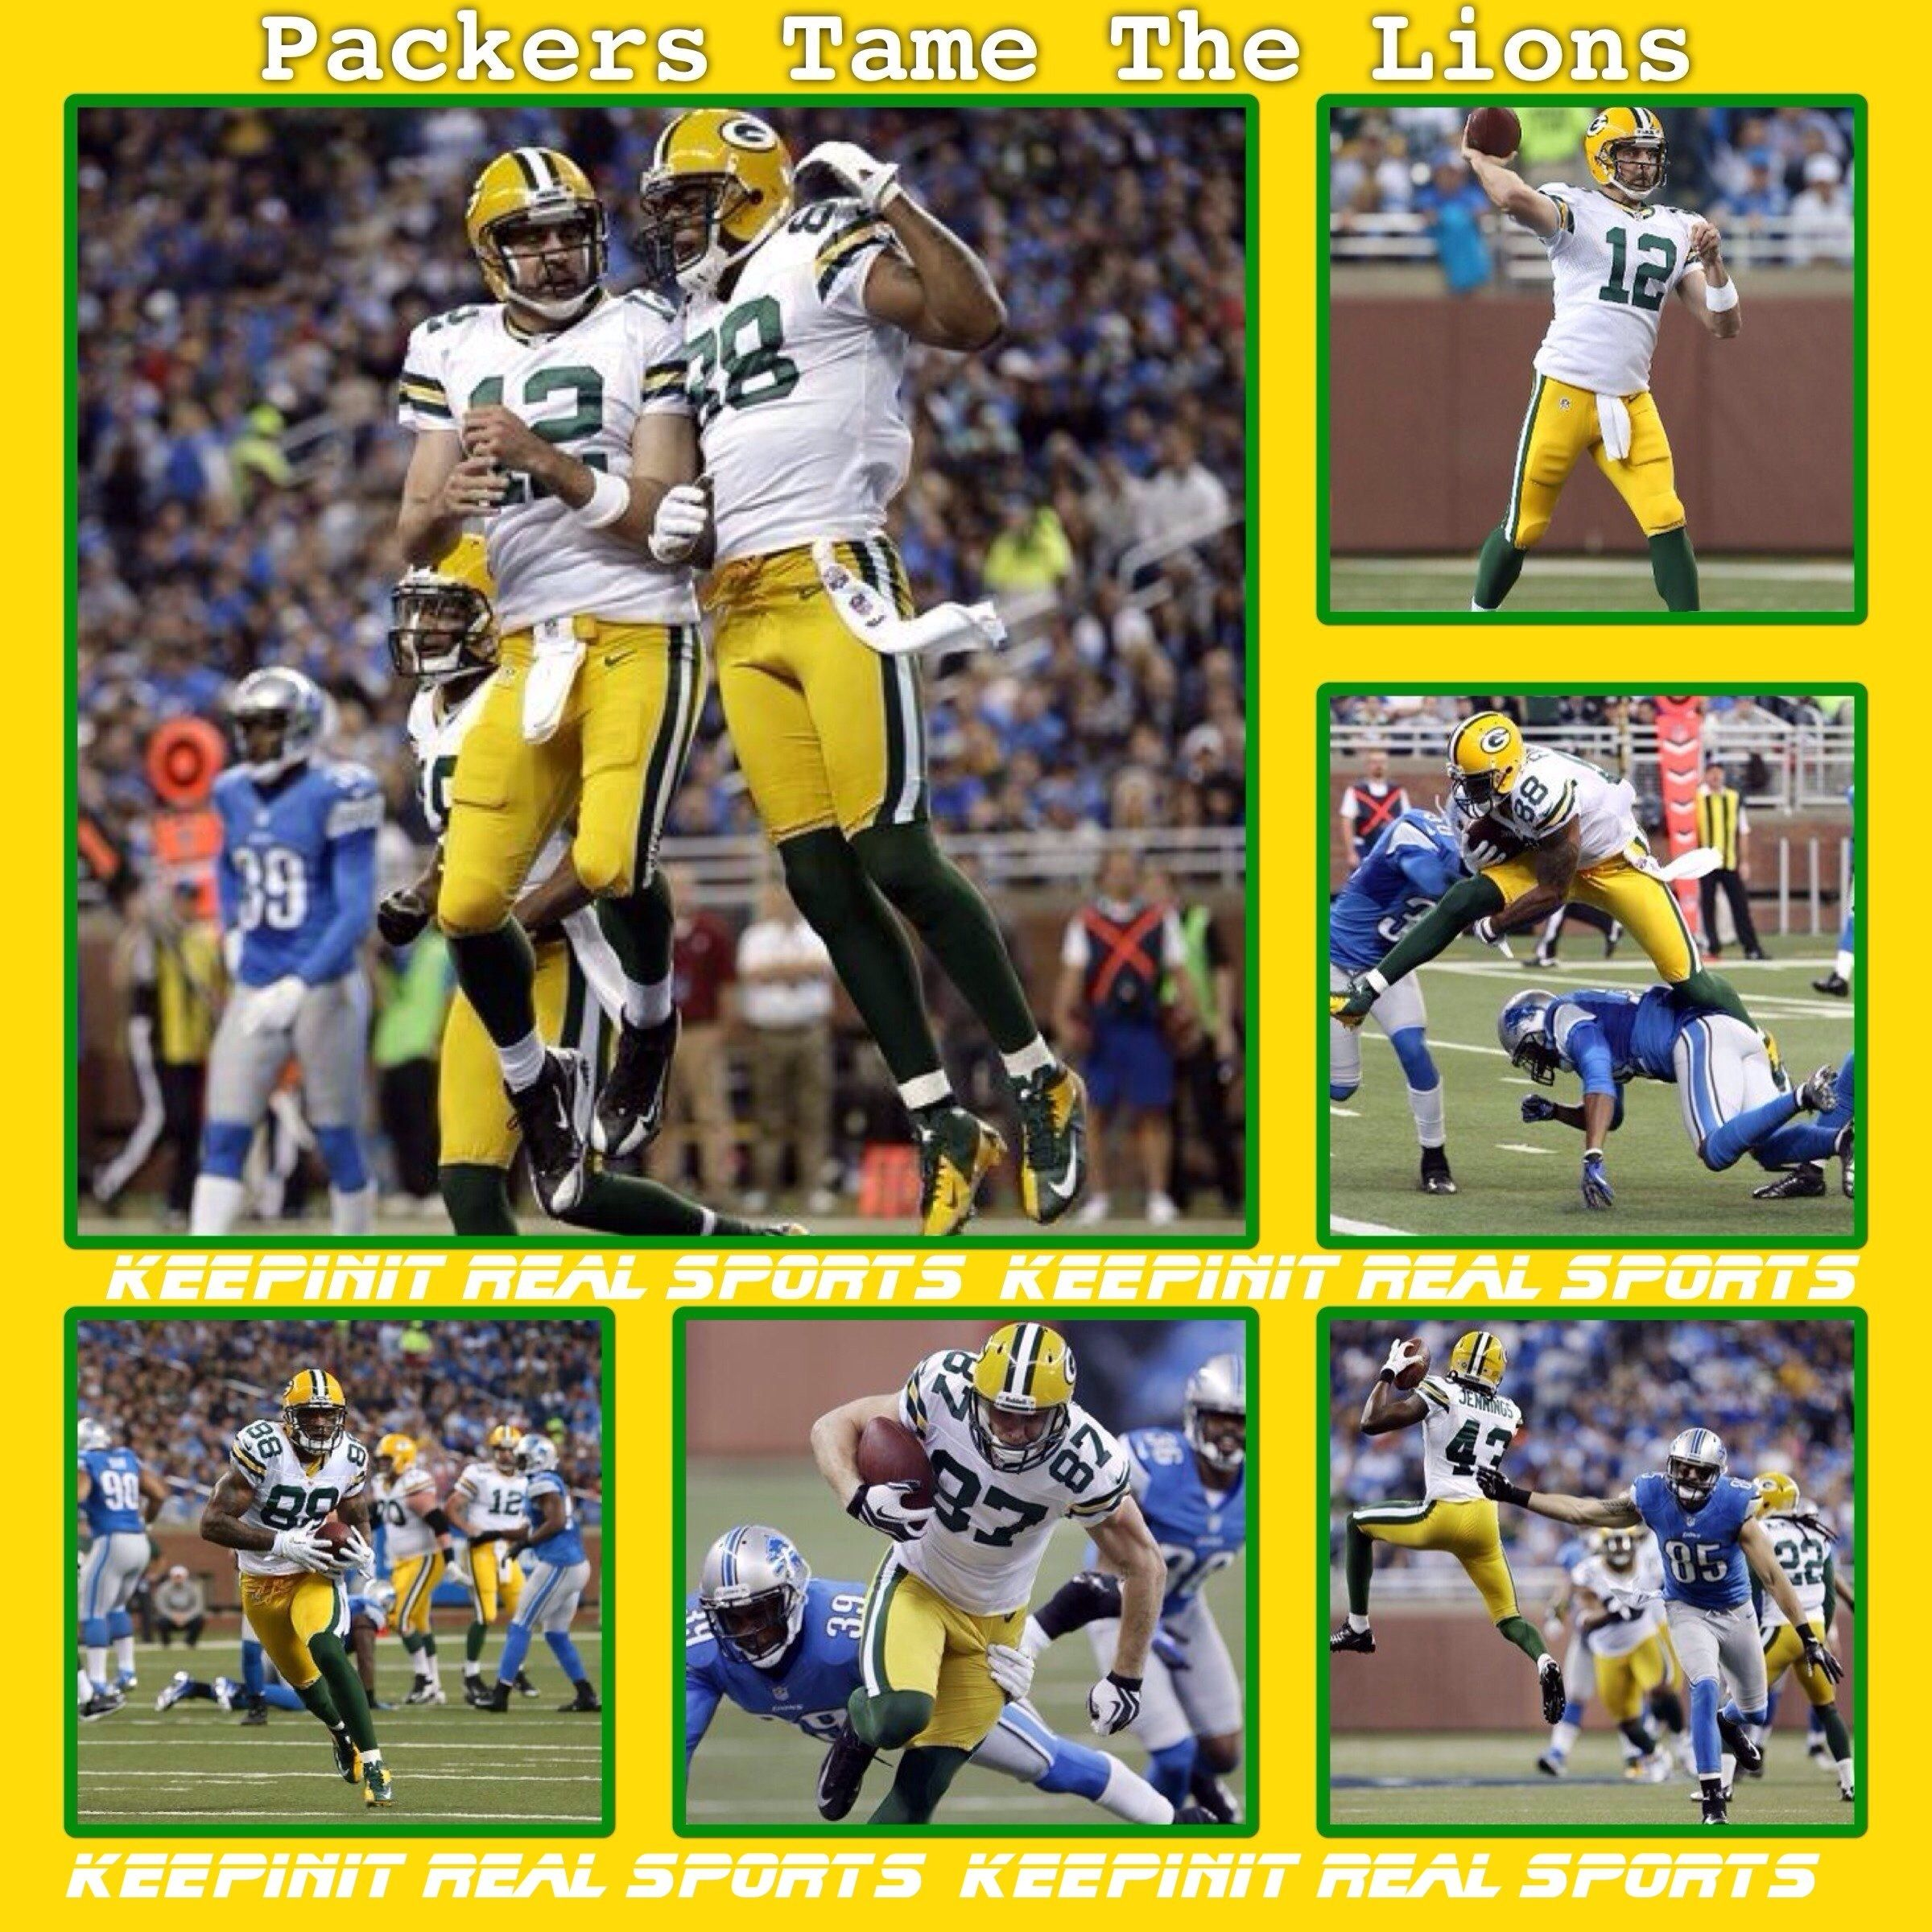 Keepinit Real Nfl Stats Packers Vs Lions Packers 24 7 3 3 2 Away Lions 20 4 6 2 2 Home Final Top Performers Passing M Staf Nfl Sports